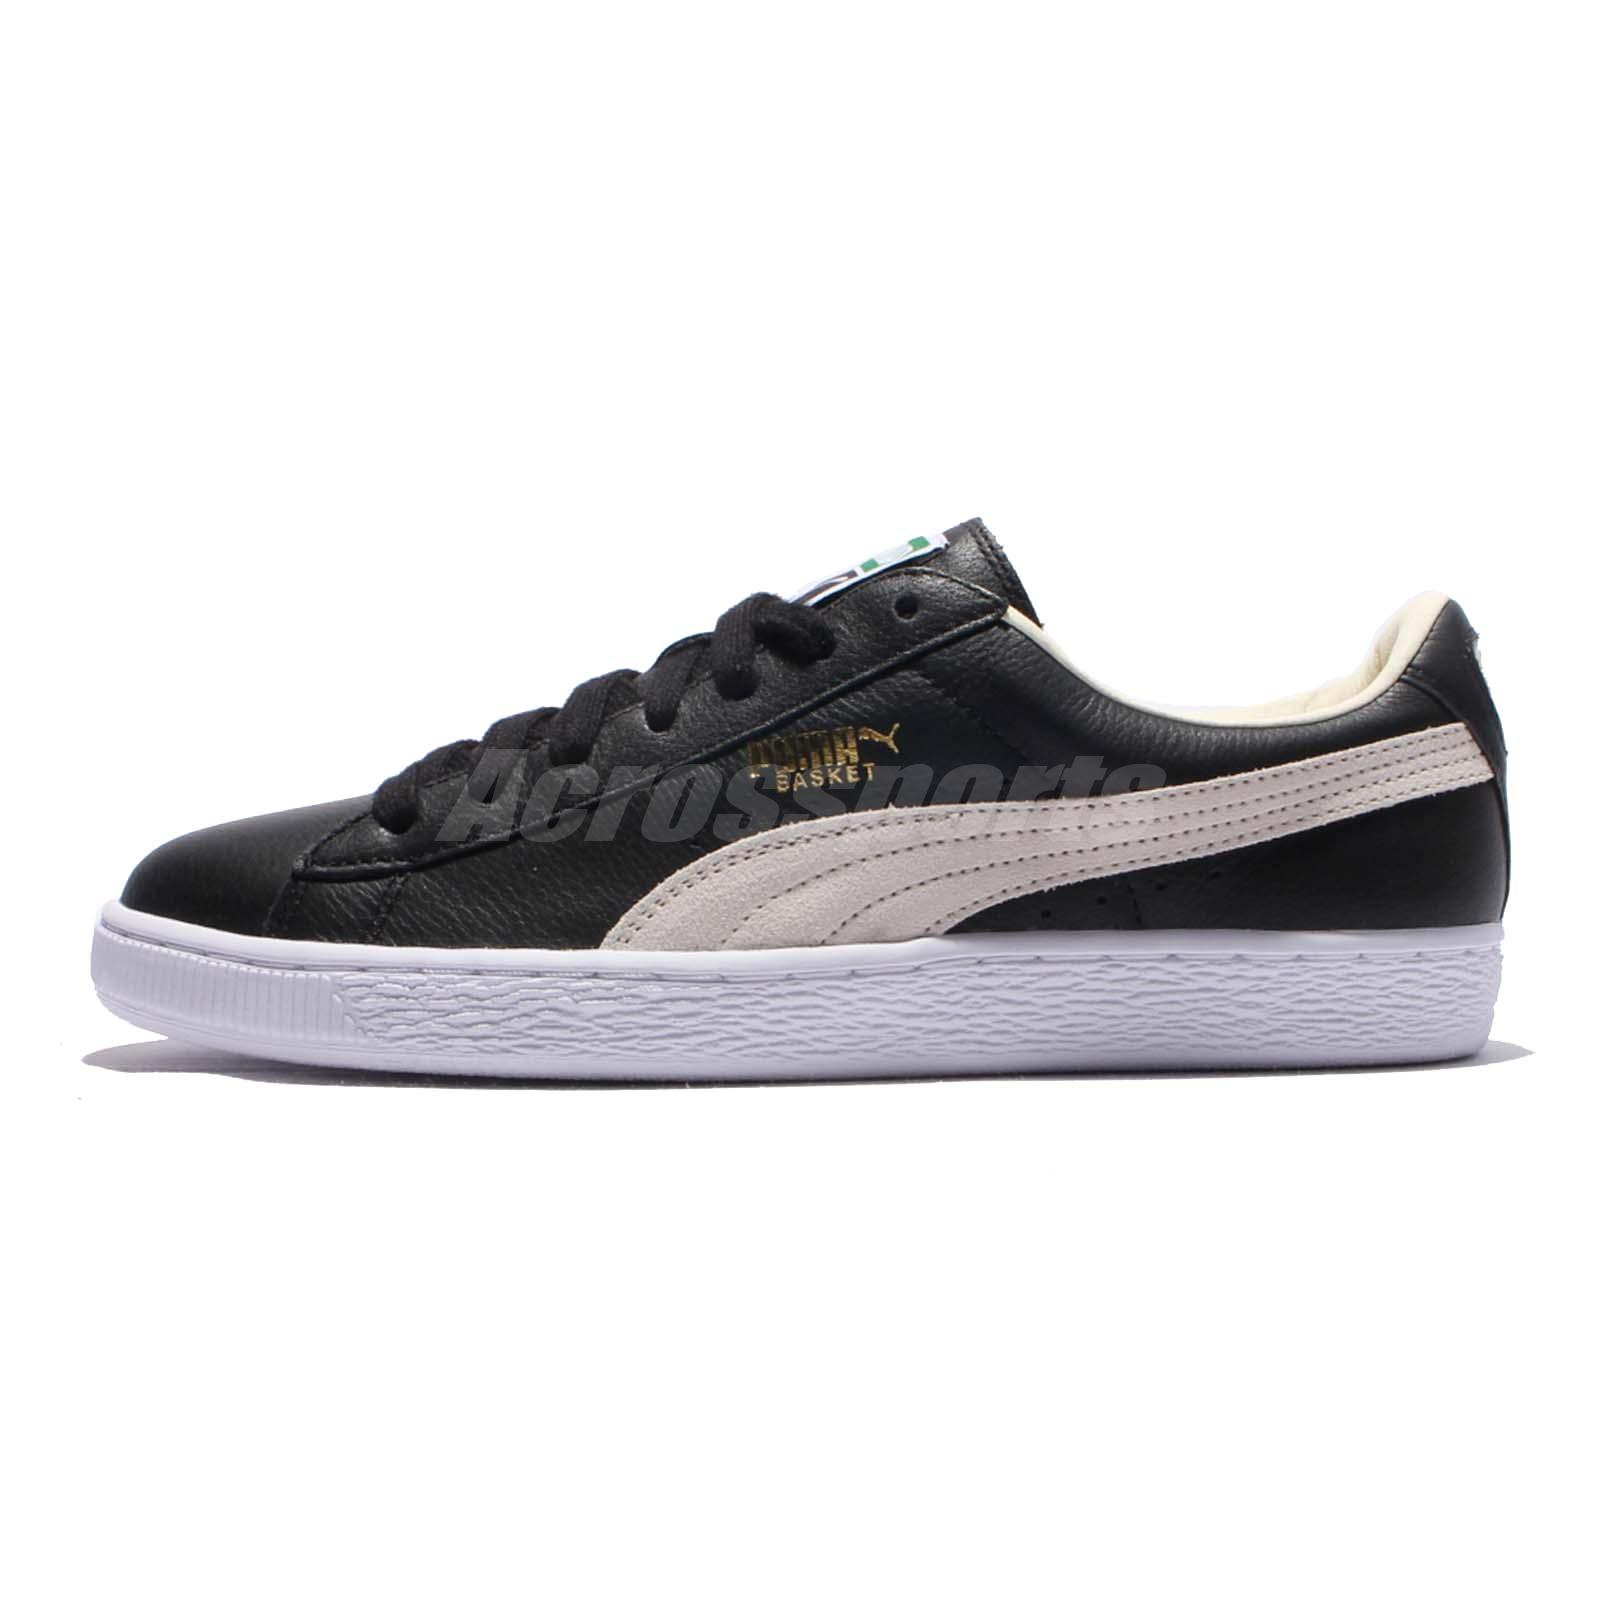 63516522ae5 Puma Basket Classic Black White Mens Casual Shoes Sneakers Trainers  351912-02